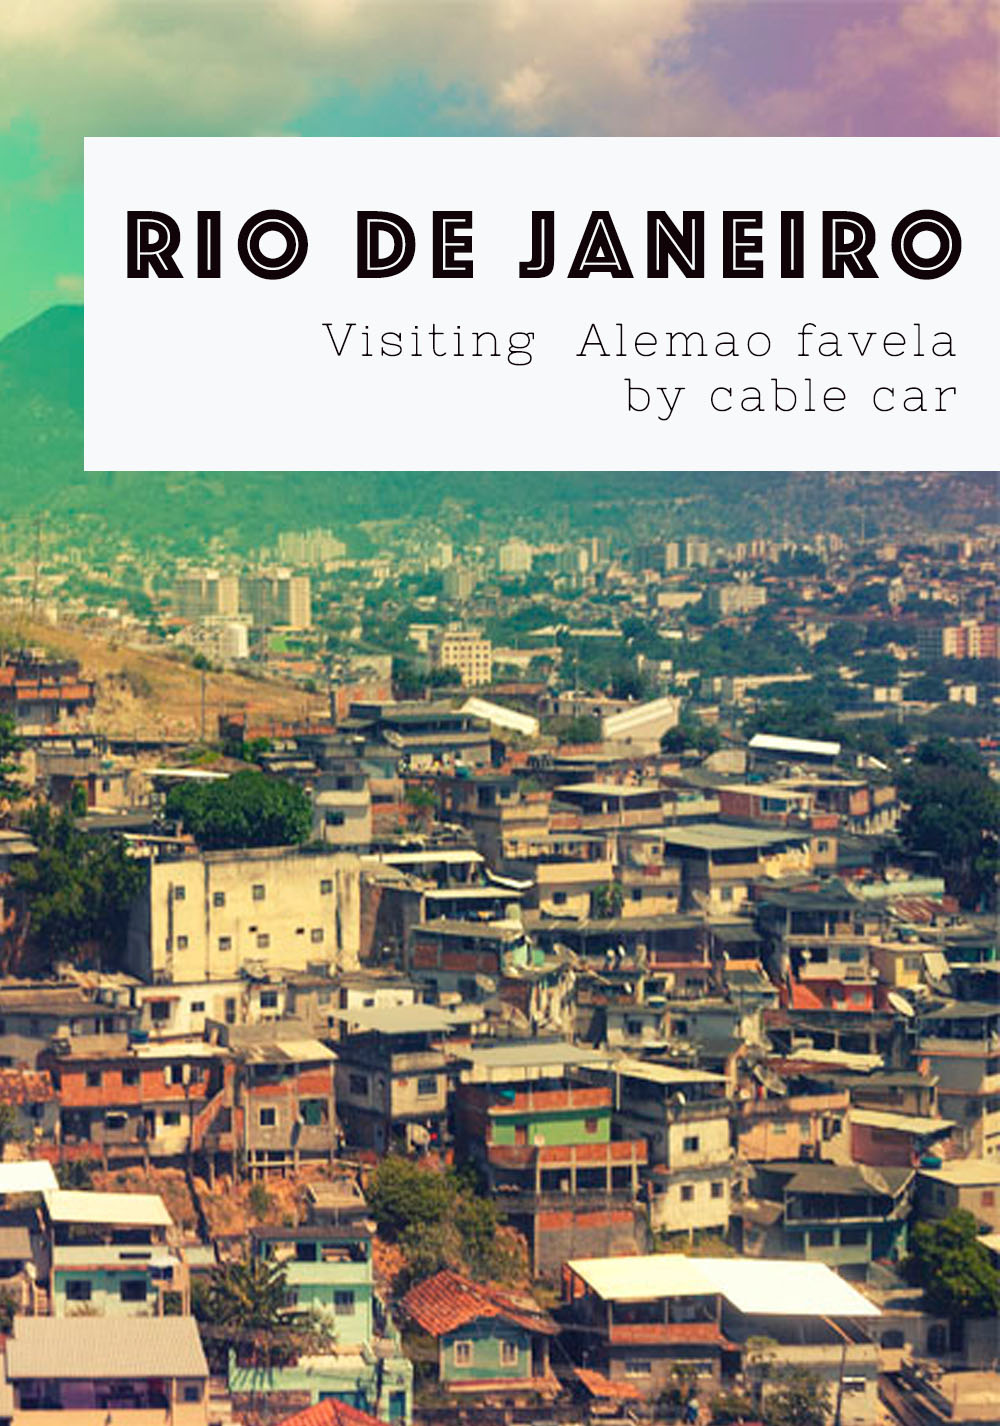 Visiting rio favela by cable car